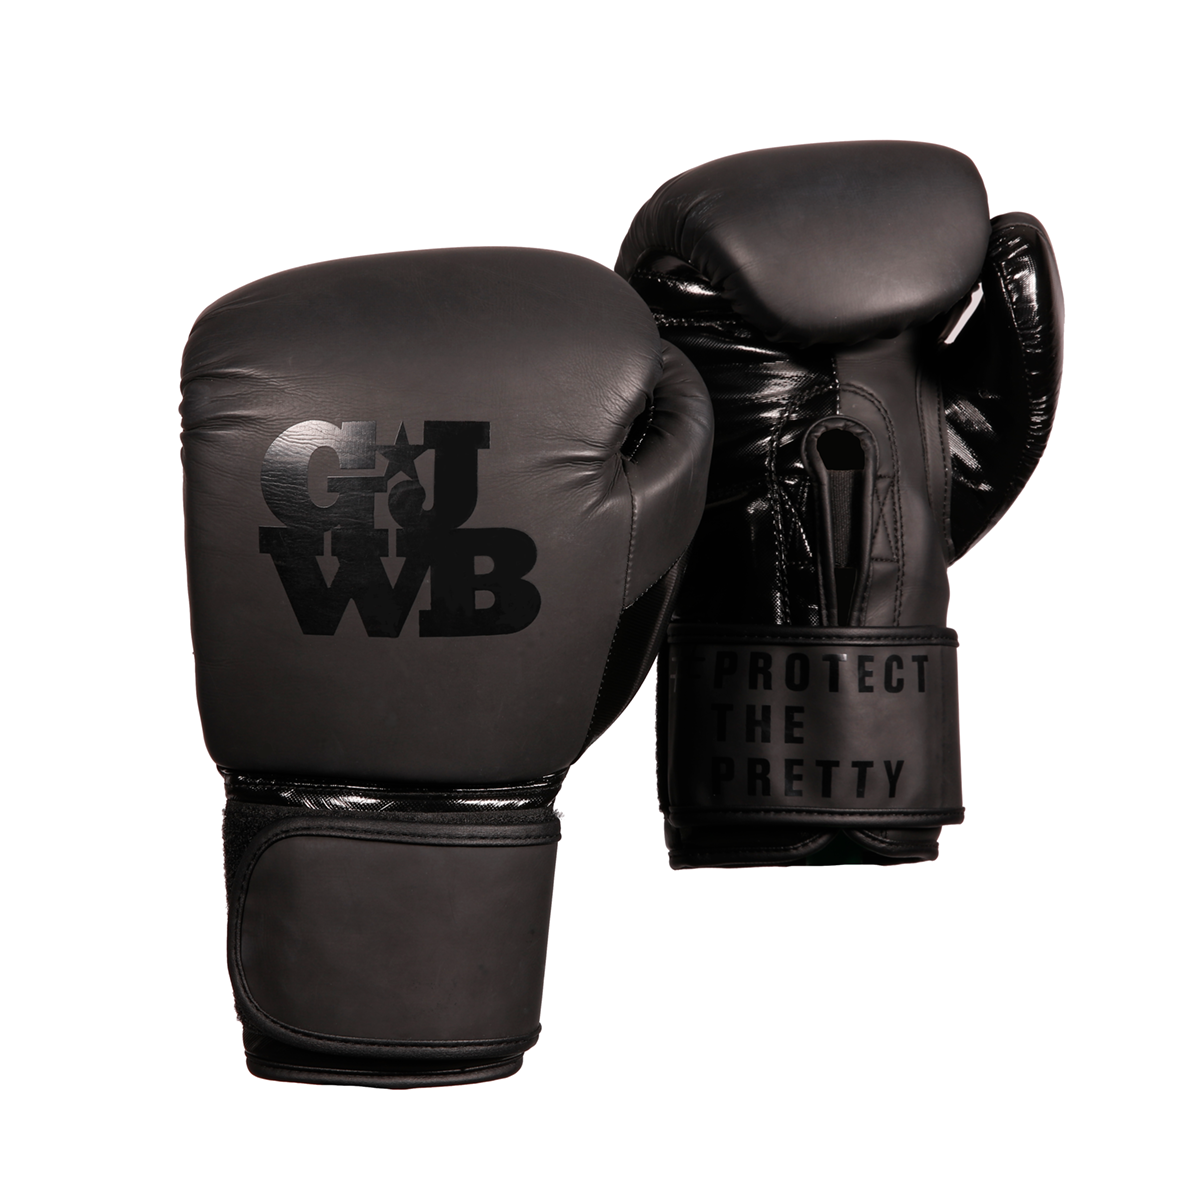 Matte black women's boxing gloves with GJWB logo